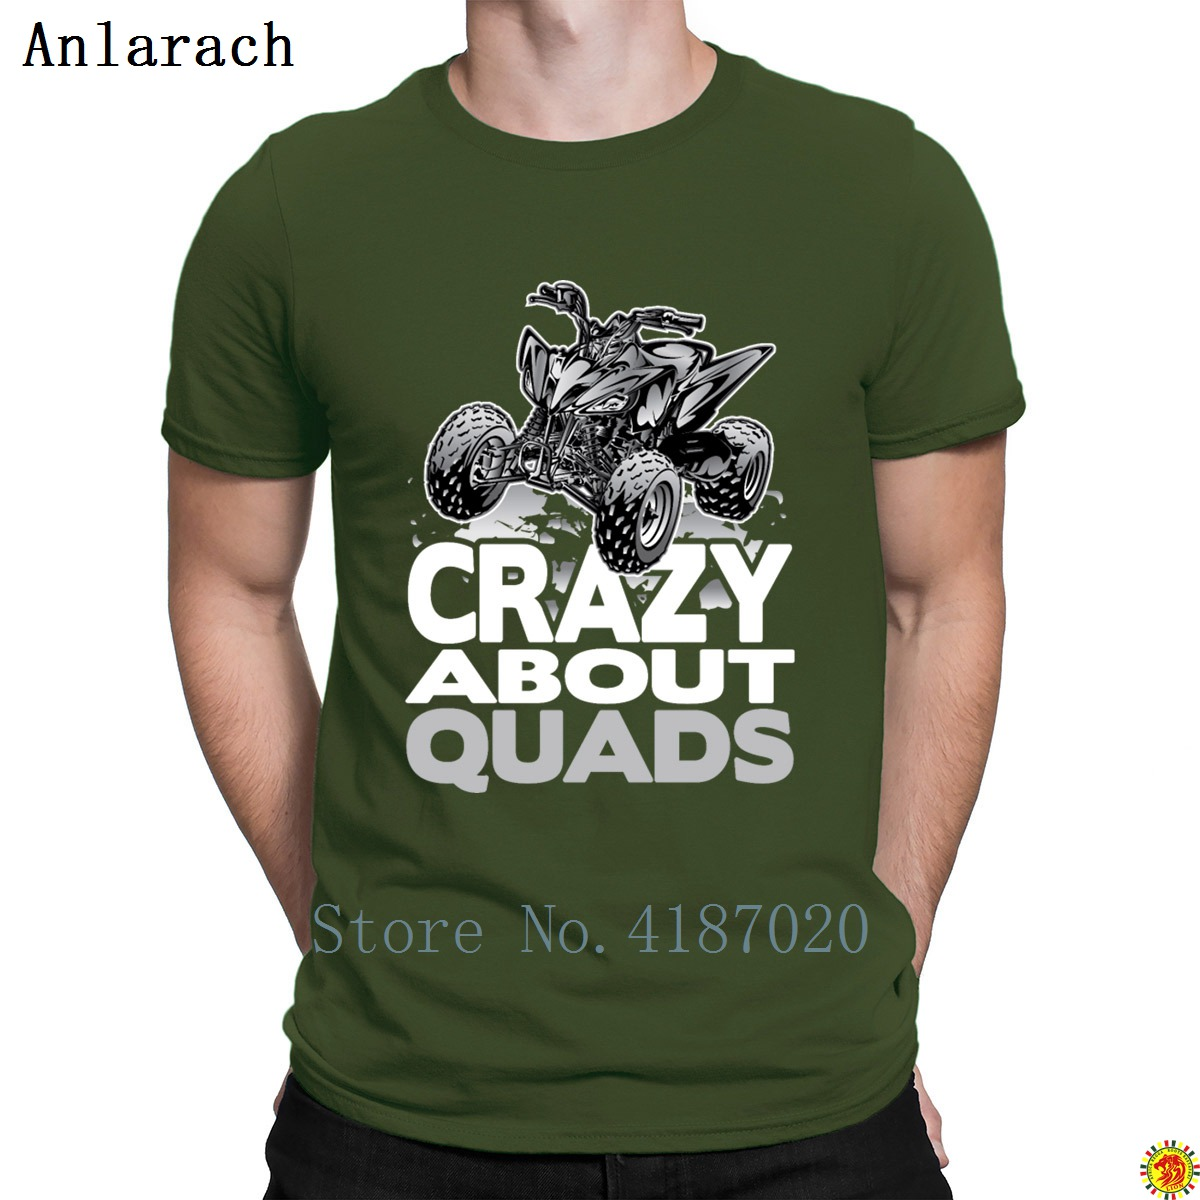 1a9c155ff9e9 Crazy T Shirts Designs Sell - Nils Stucki Kieferorthopäde